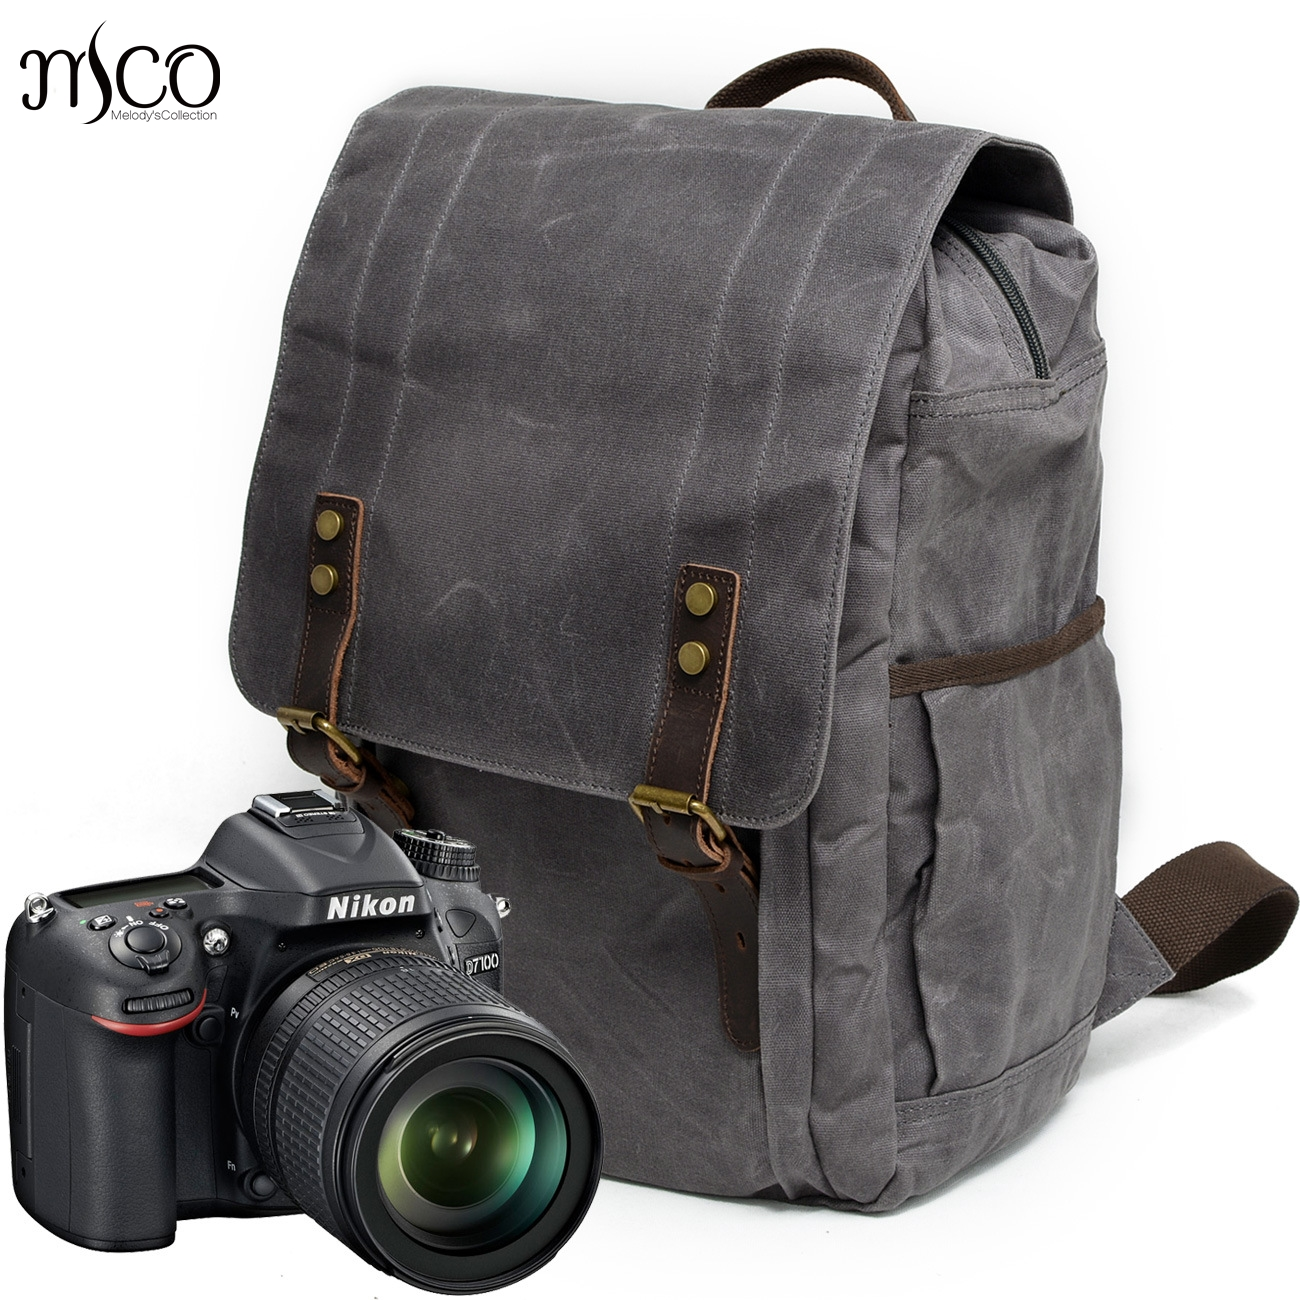 Melodycollection Men Laptop Backpack Waterproof Travel Schoolbag Multifunction Wax Canvas Large Capacity Rucksack School Bags big capacity tactical canvas backpack vintage laptop bags hiking men s backpack schoolbag travel rucksack outdoor daypack me0888